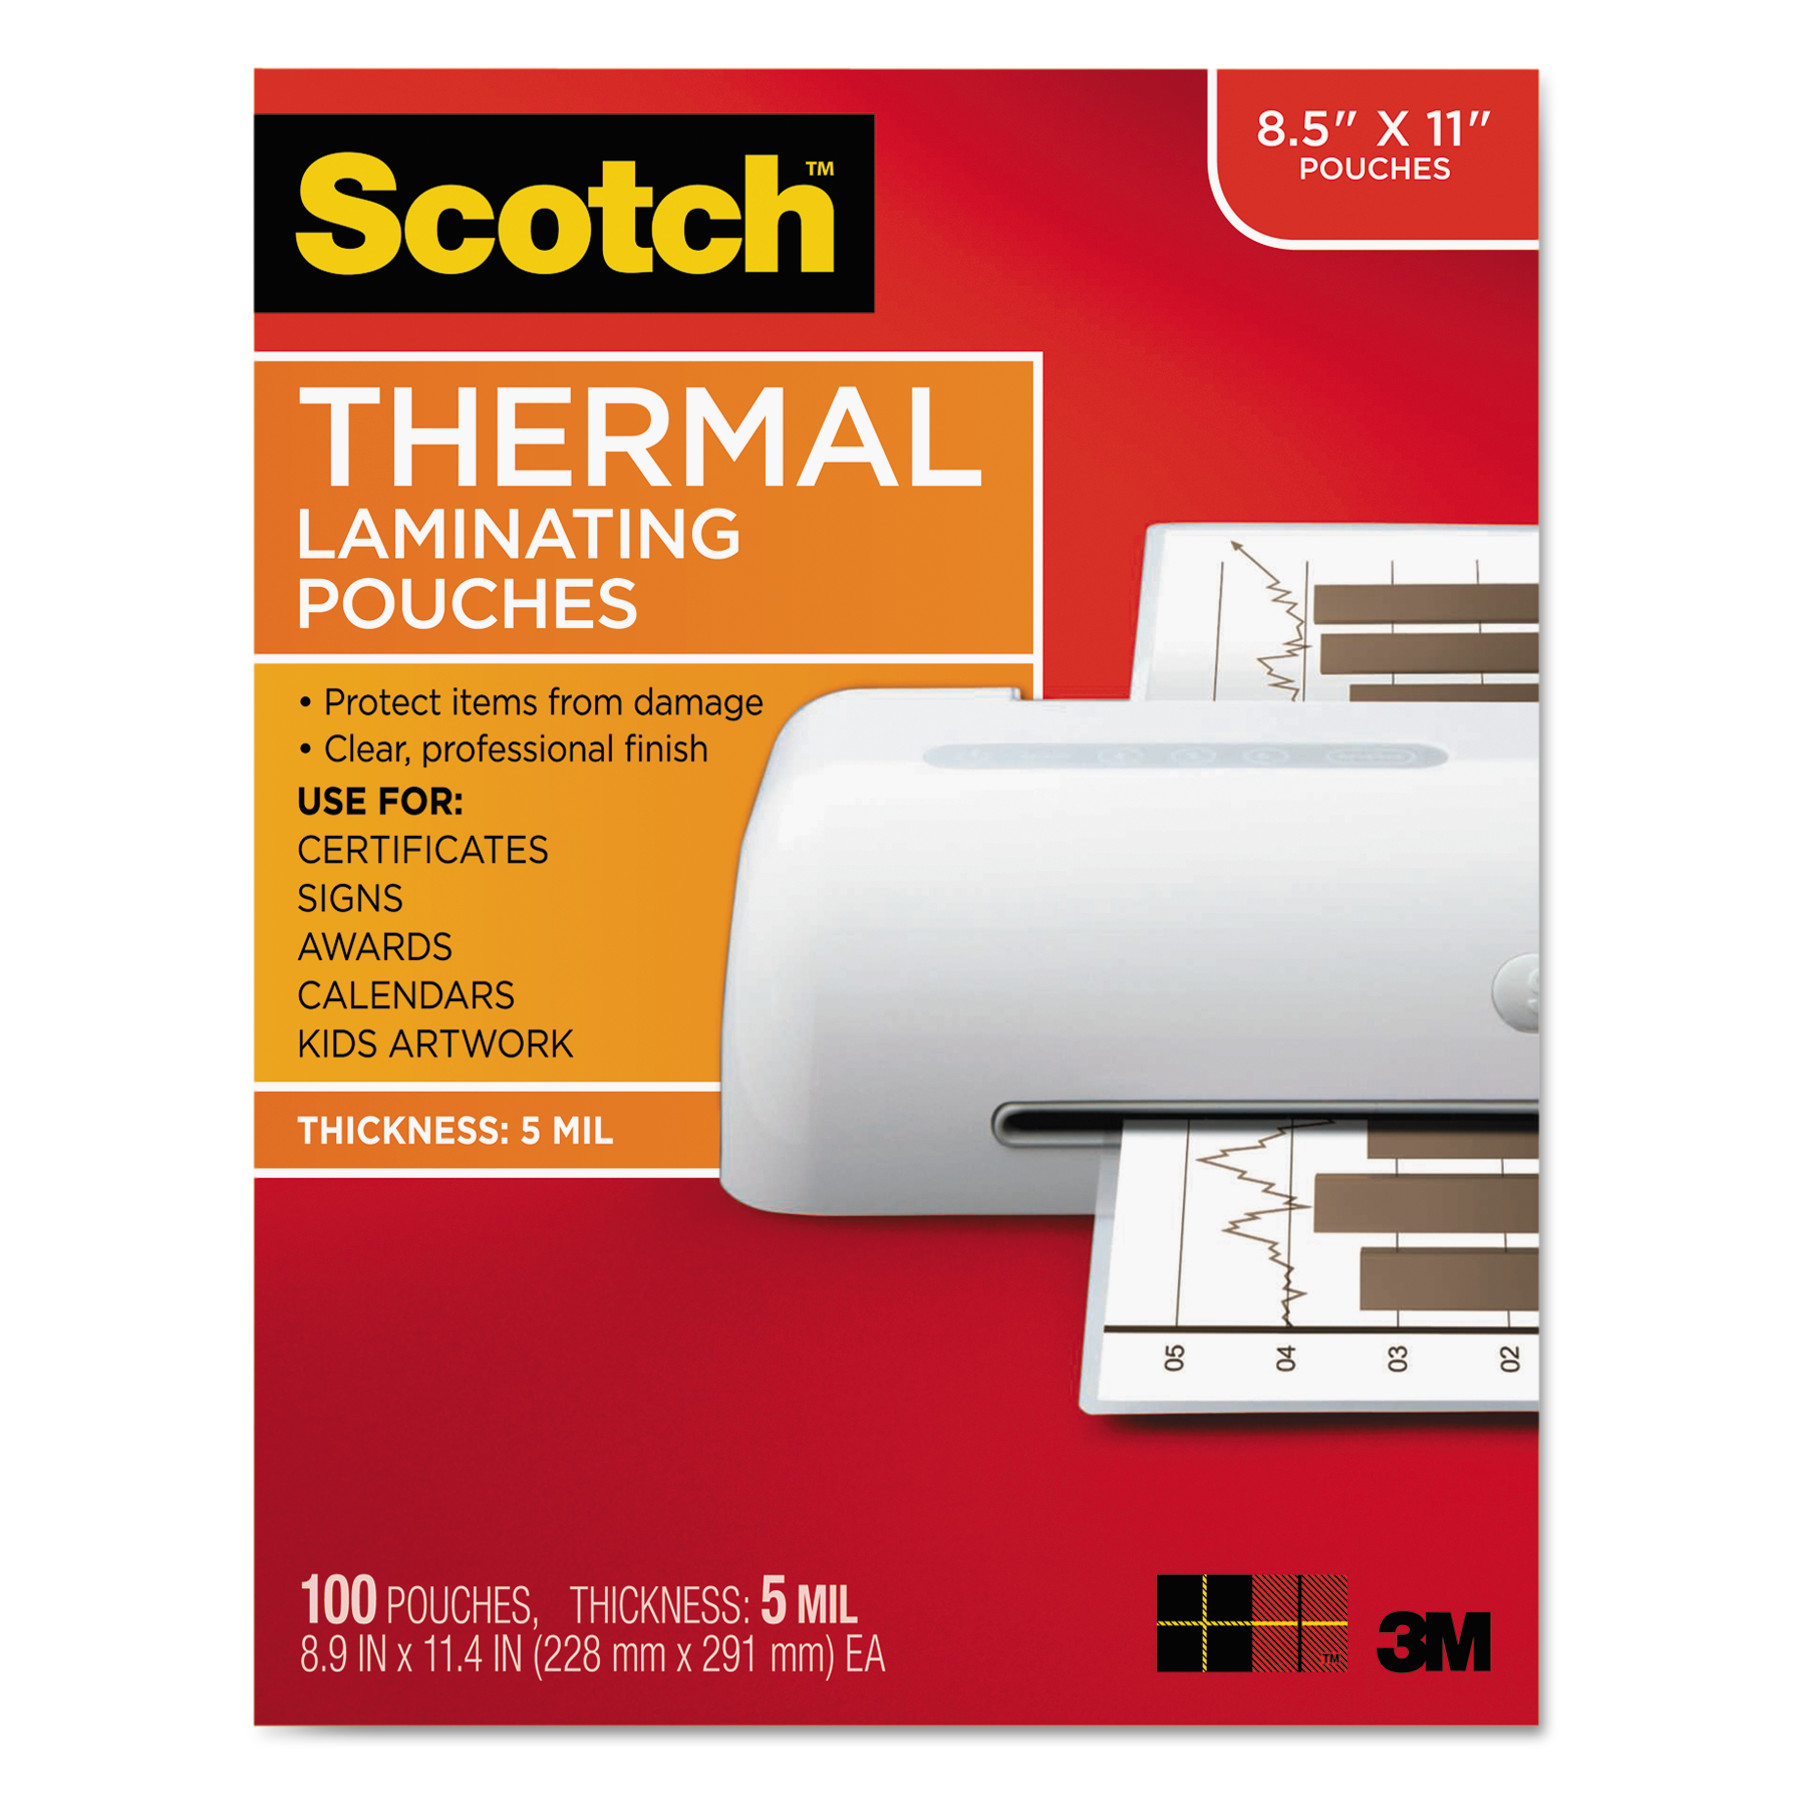 Scotch Premium Thermal Laminating Pouches 100 Count, Letter Size Sheets